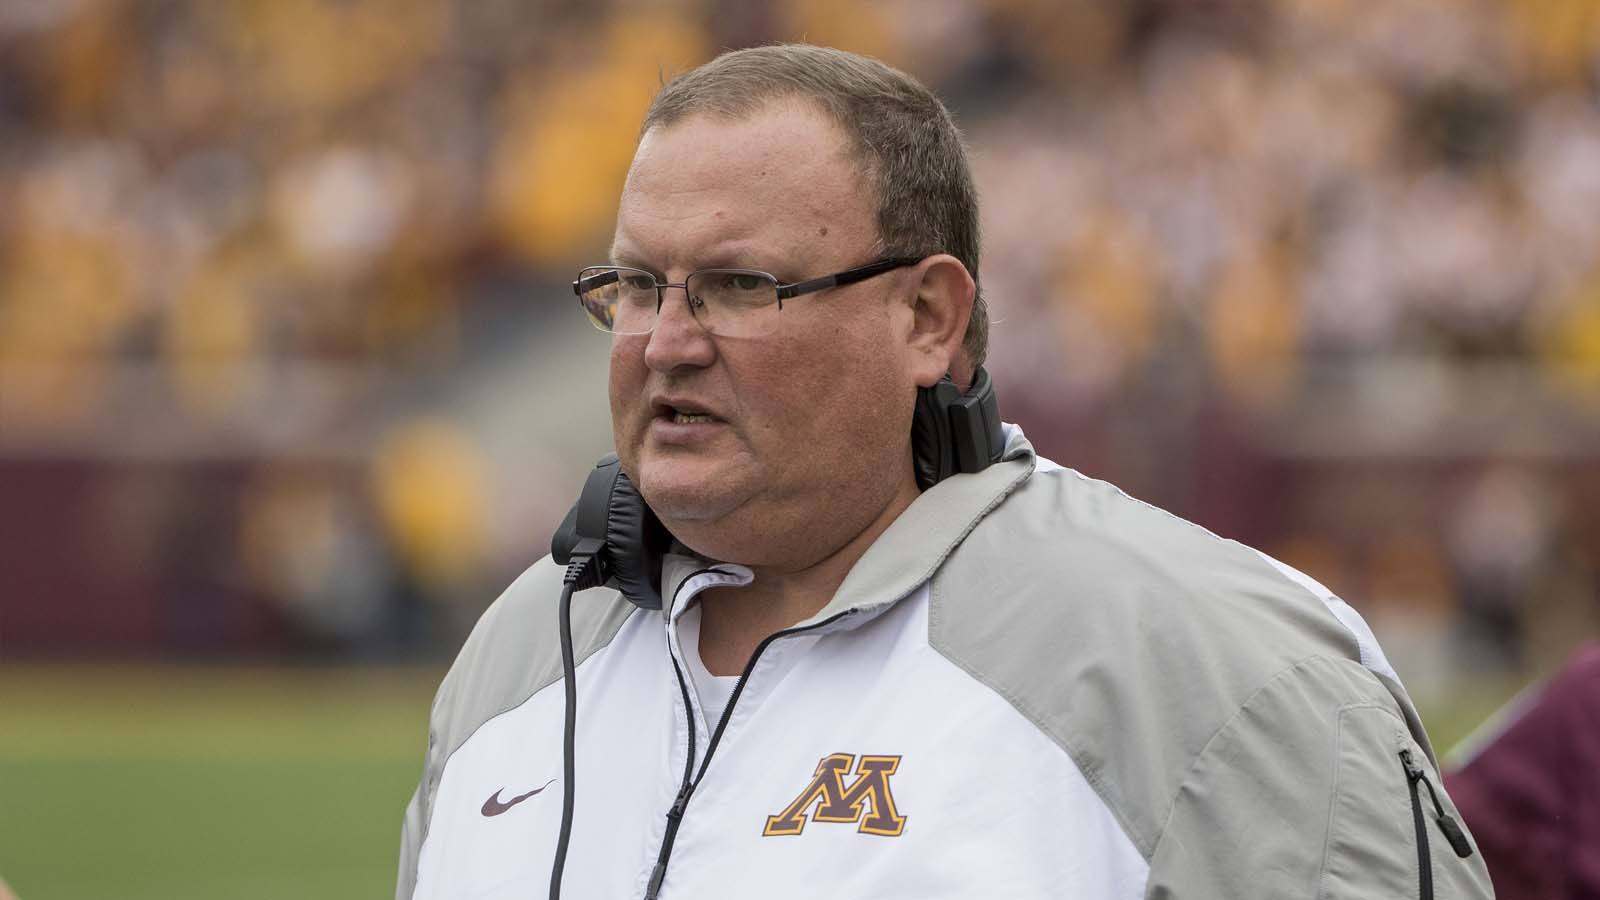 Gophers AD, Tracy Claeys to meet soon, discuss program's future